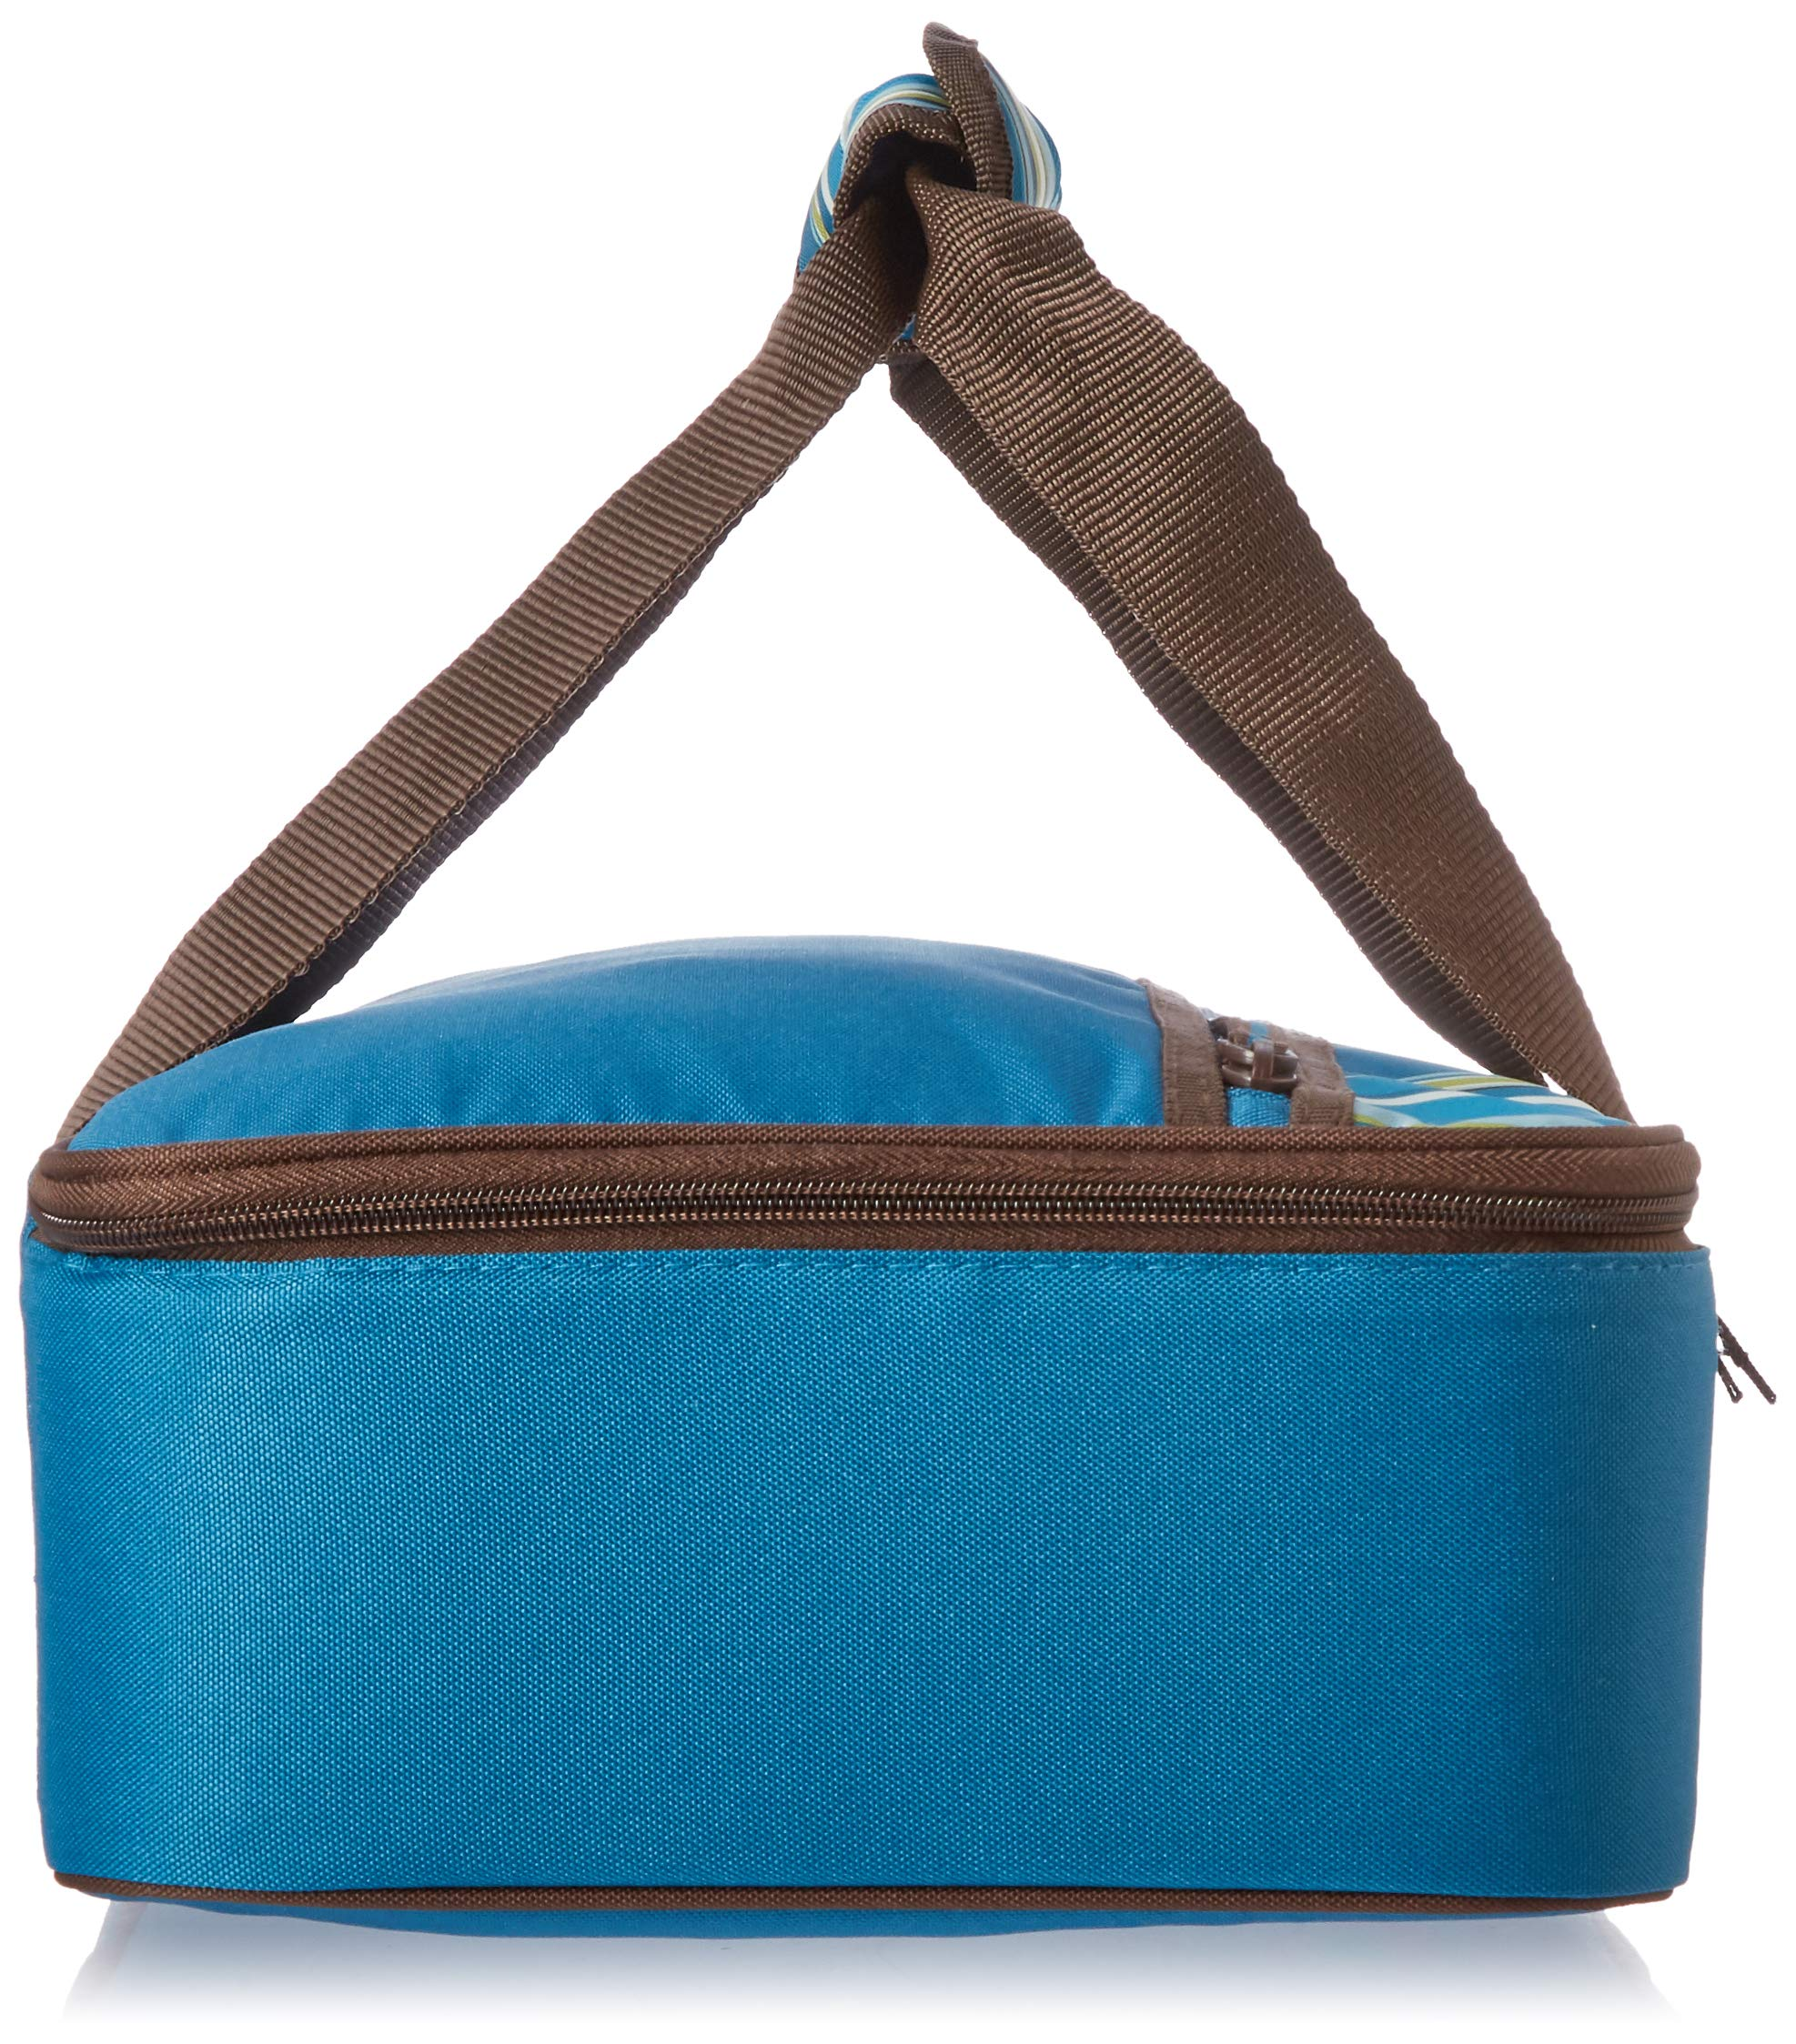 Rachael Ray Lasagna Lugger, Insulated Casserole Carrier for Potluck Parties, Picnics, Tailgates - Fits 9''x13'' Baking Dish, Marine Blue Stripes by Rachael Ray (Image #3)